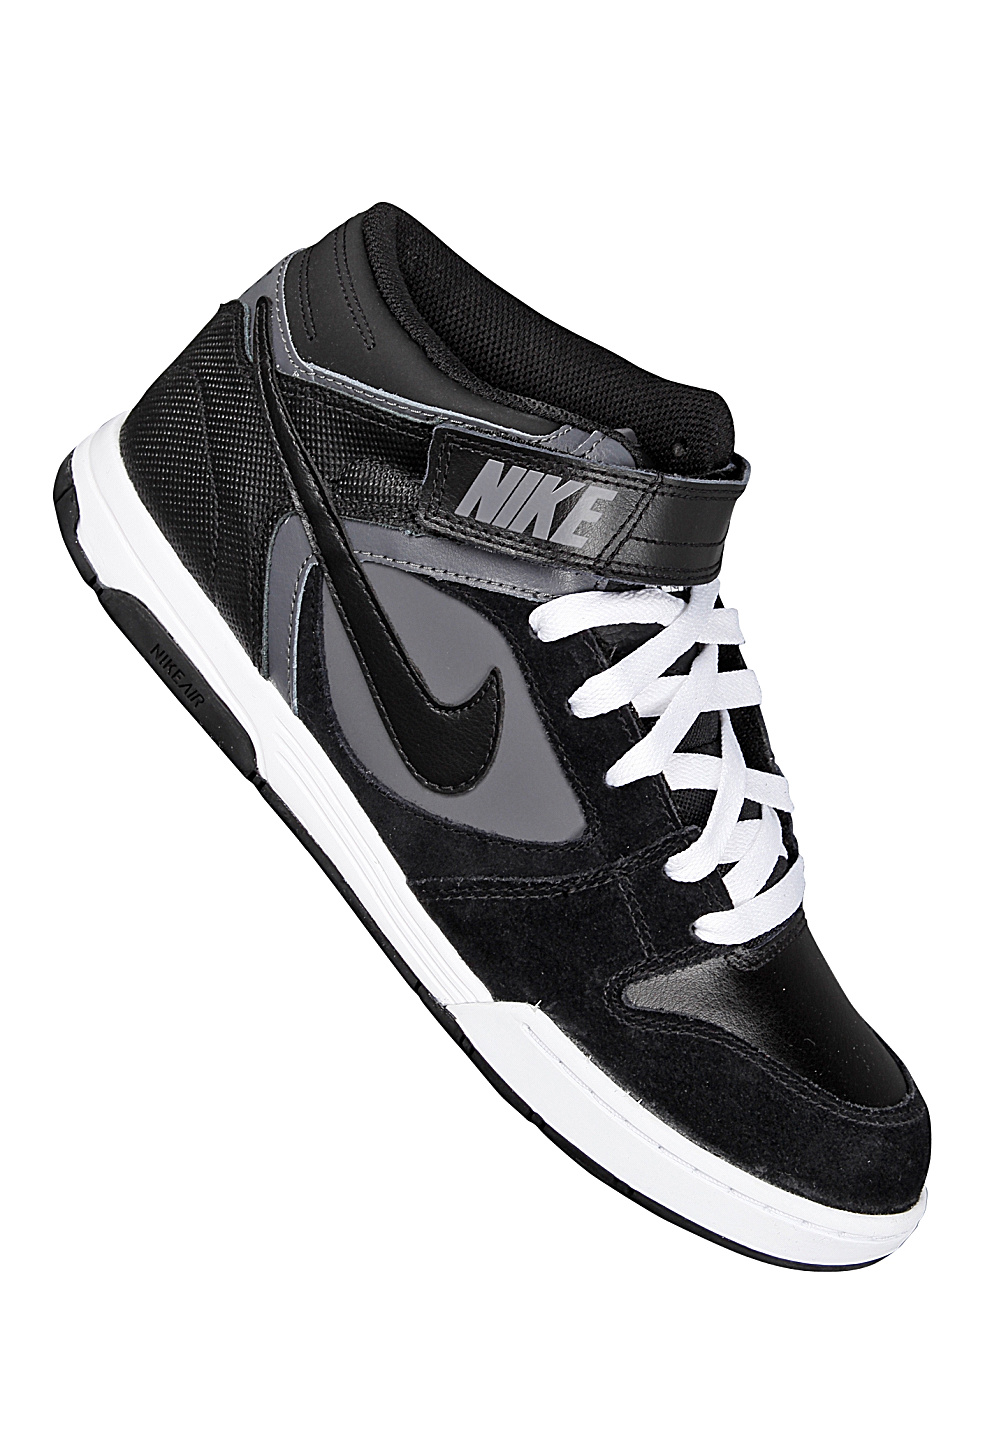 online store 0547f 488b0 NIKE SB Air Twilight Mid - Sneakers for Men - Black